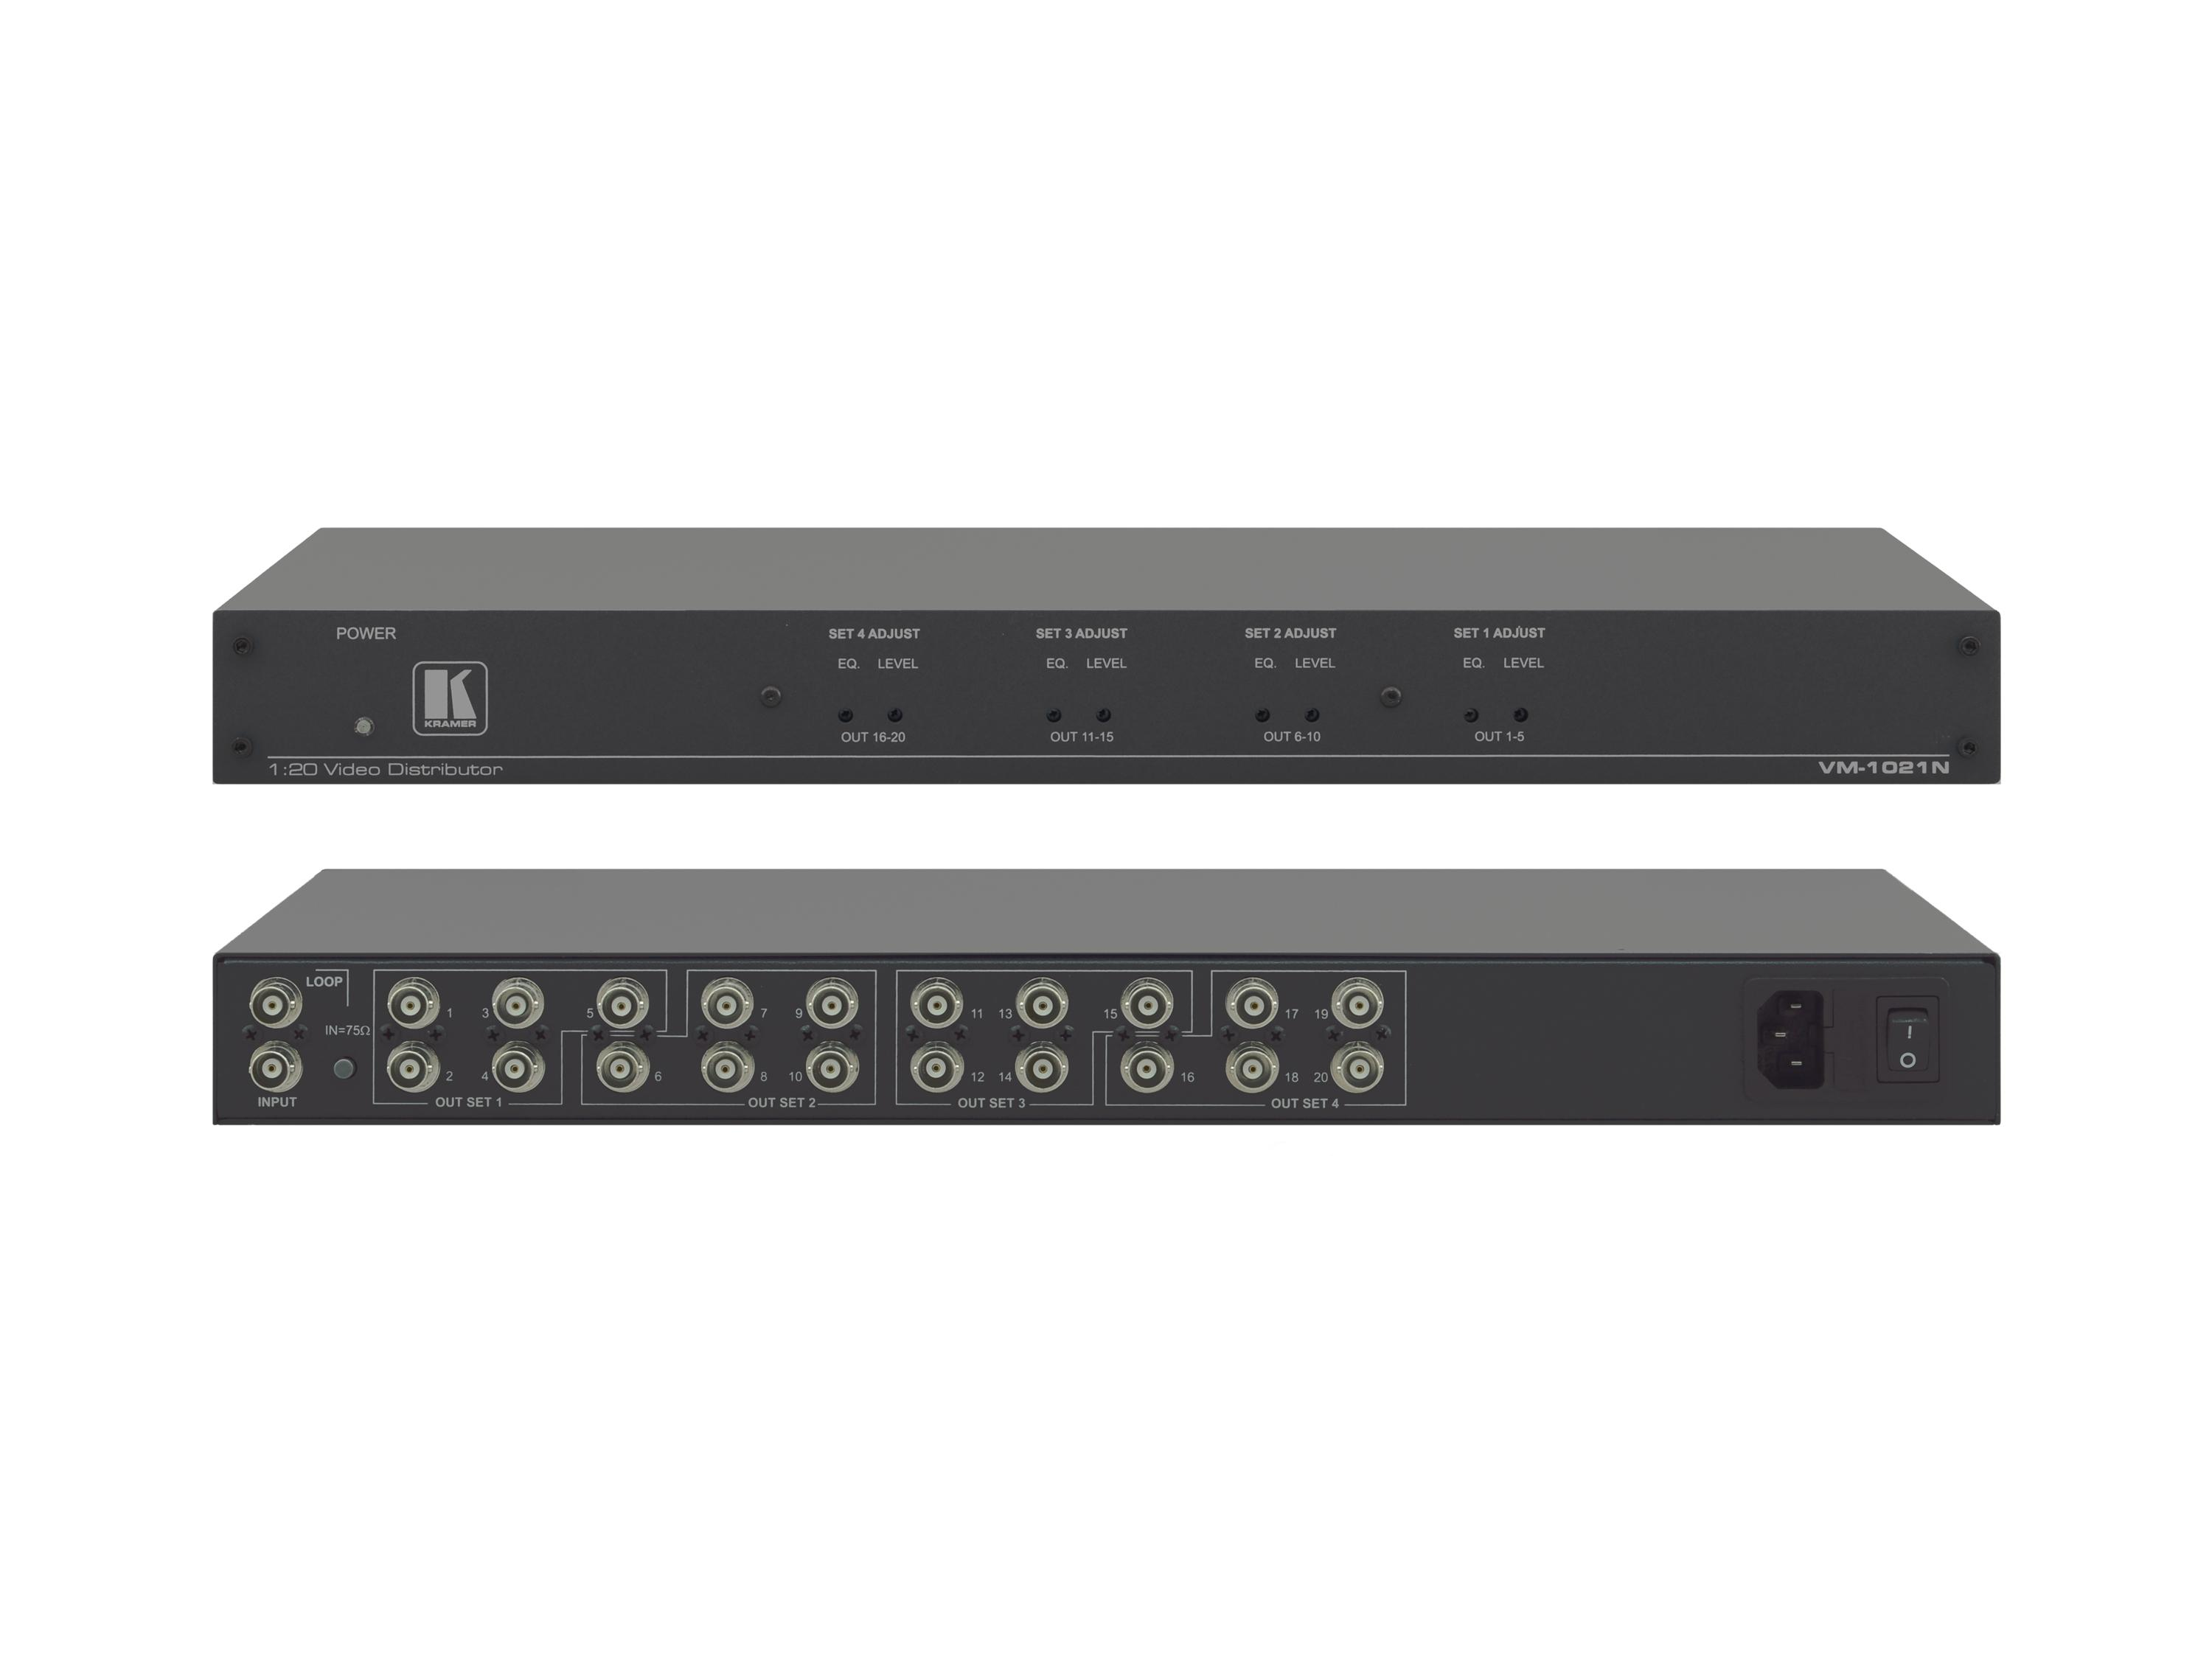 Kramer VM-1021N 1x20 Composite/SDI Video Distribution Amplifier